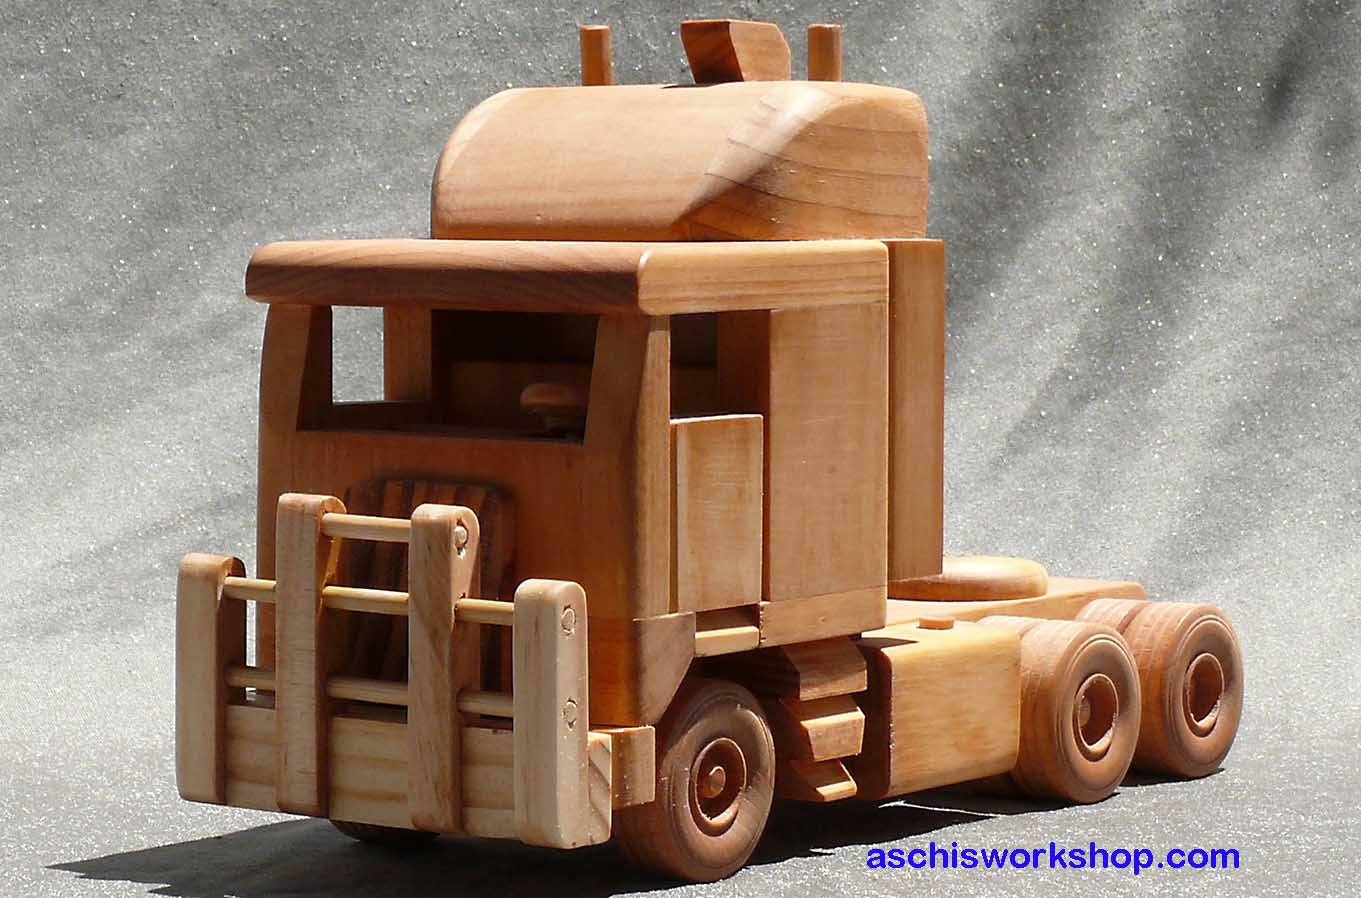 Wooden Toy Car Plans : Free toy plans